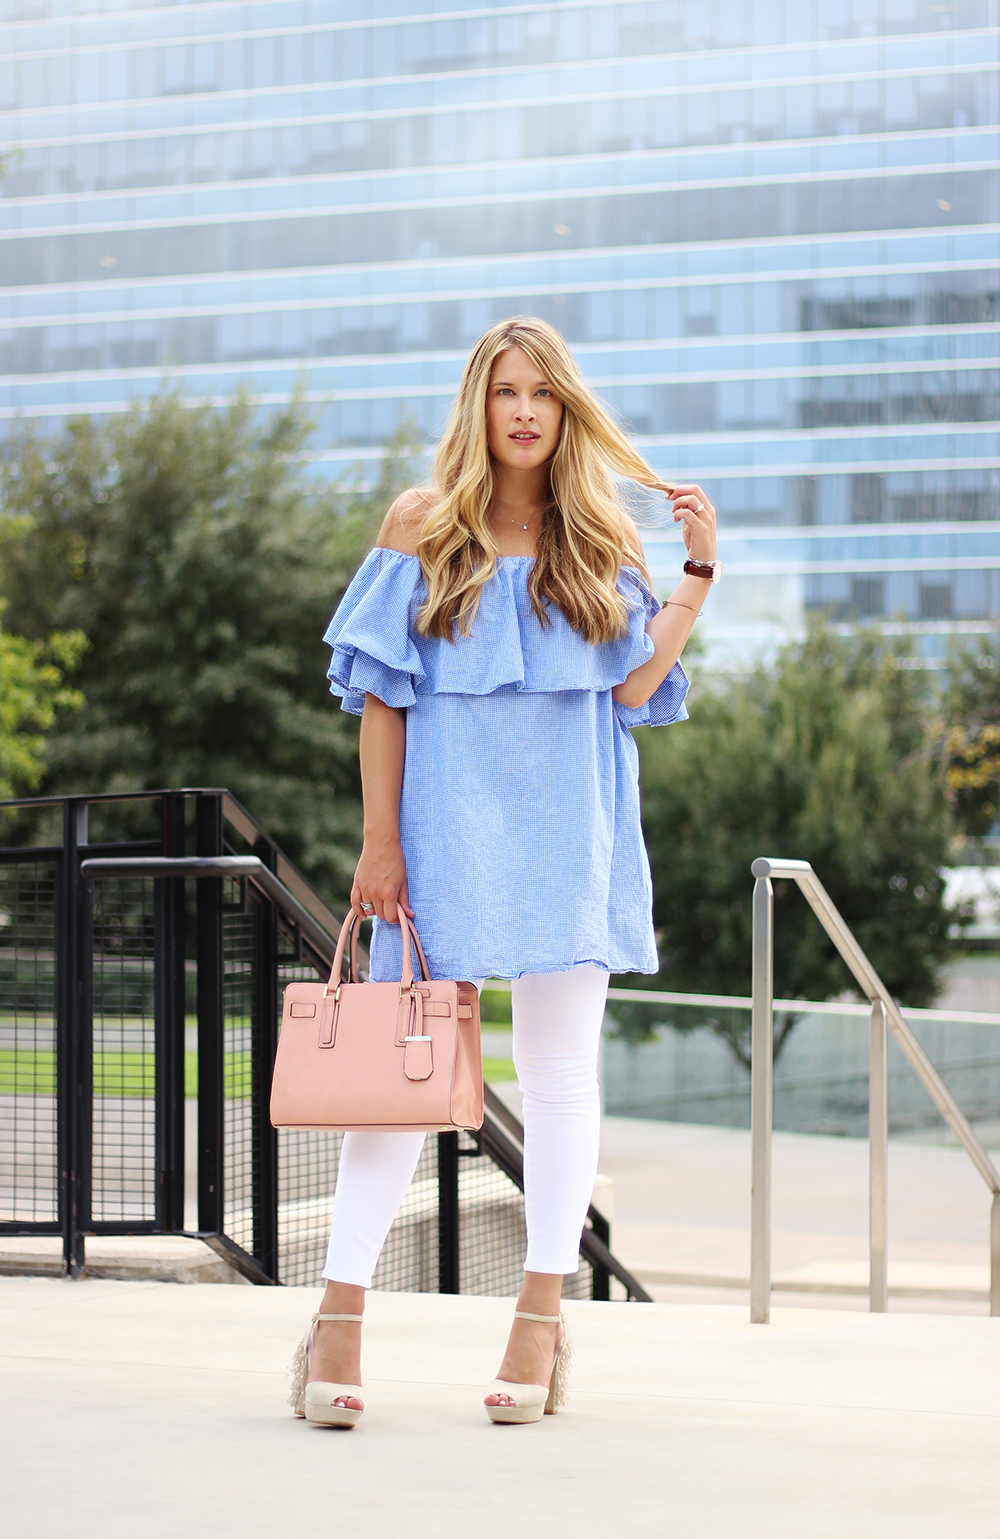 ef44de7f76dfe Dallas fashion blogger cameron proffitt wears shein off the shoulder top  and white jeans to complete ...